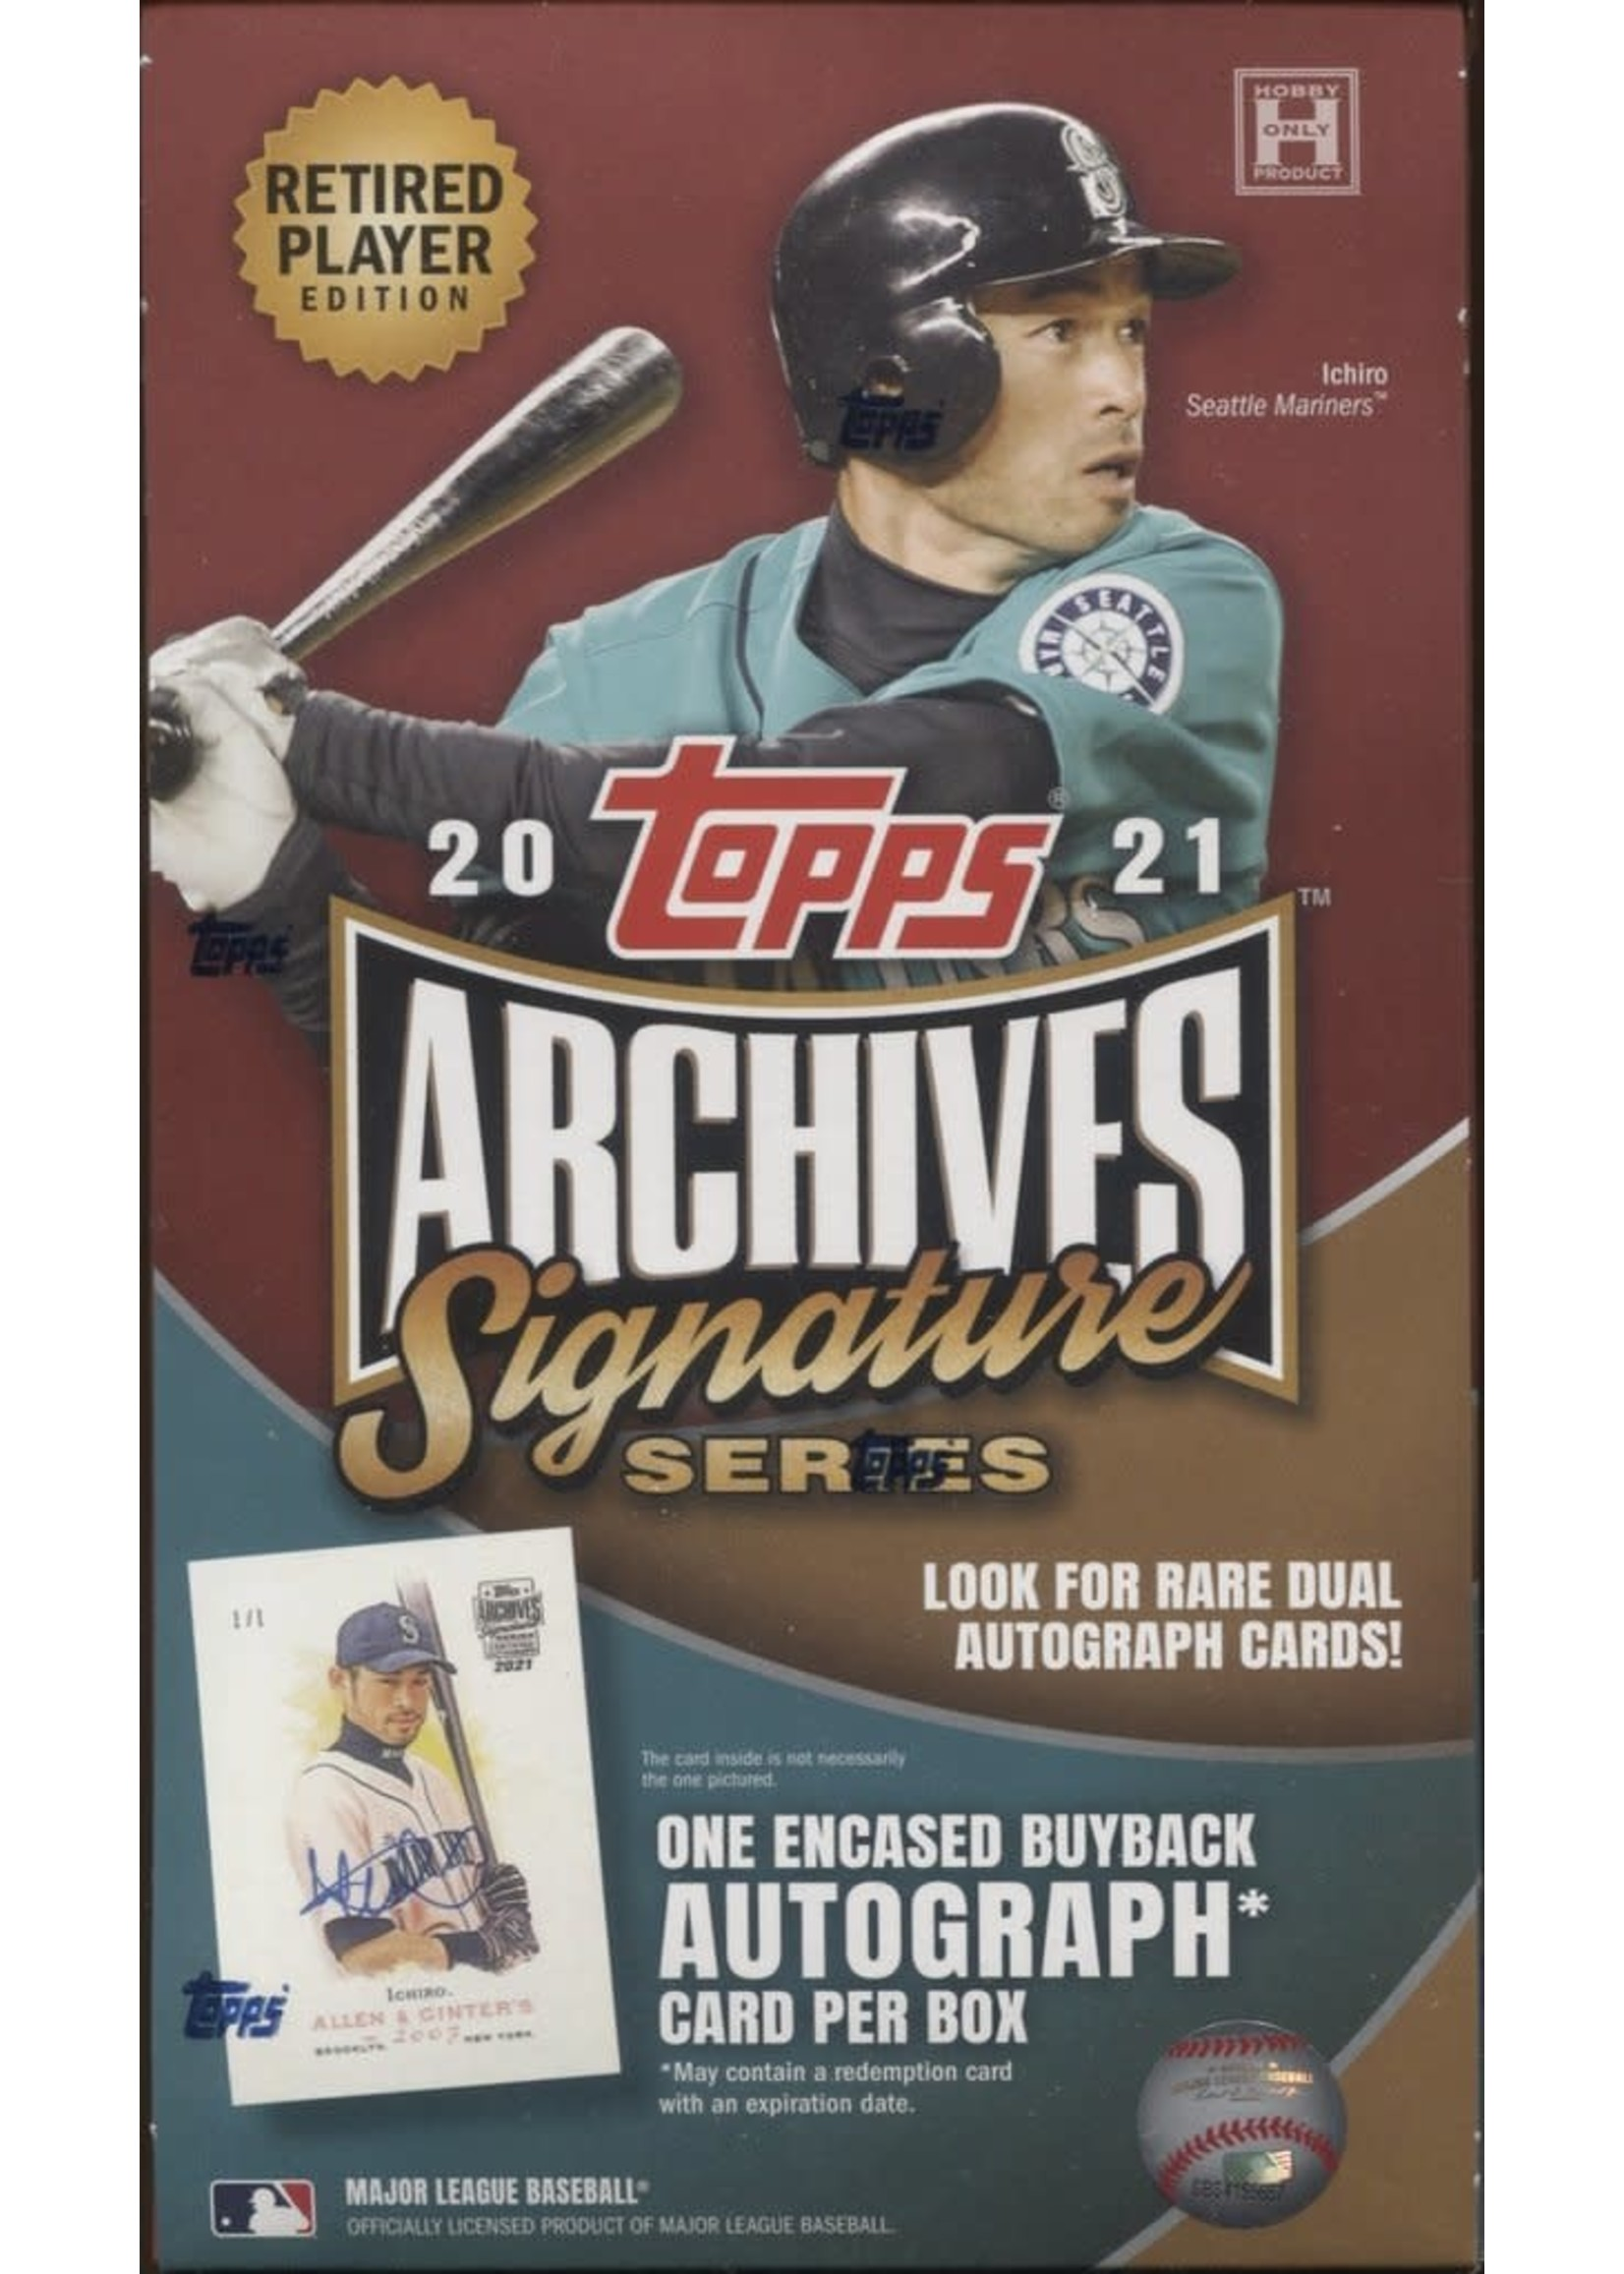 Topps 2021 TOPPS ARCHIVE SIGNATURE SERIES  BASEBALL RETIRED PLAYERS